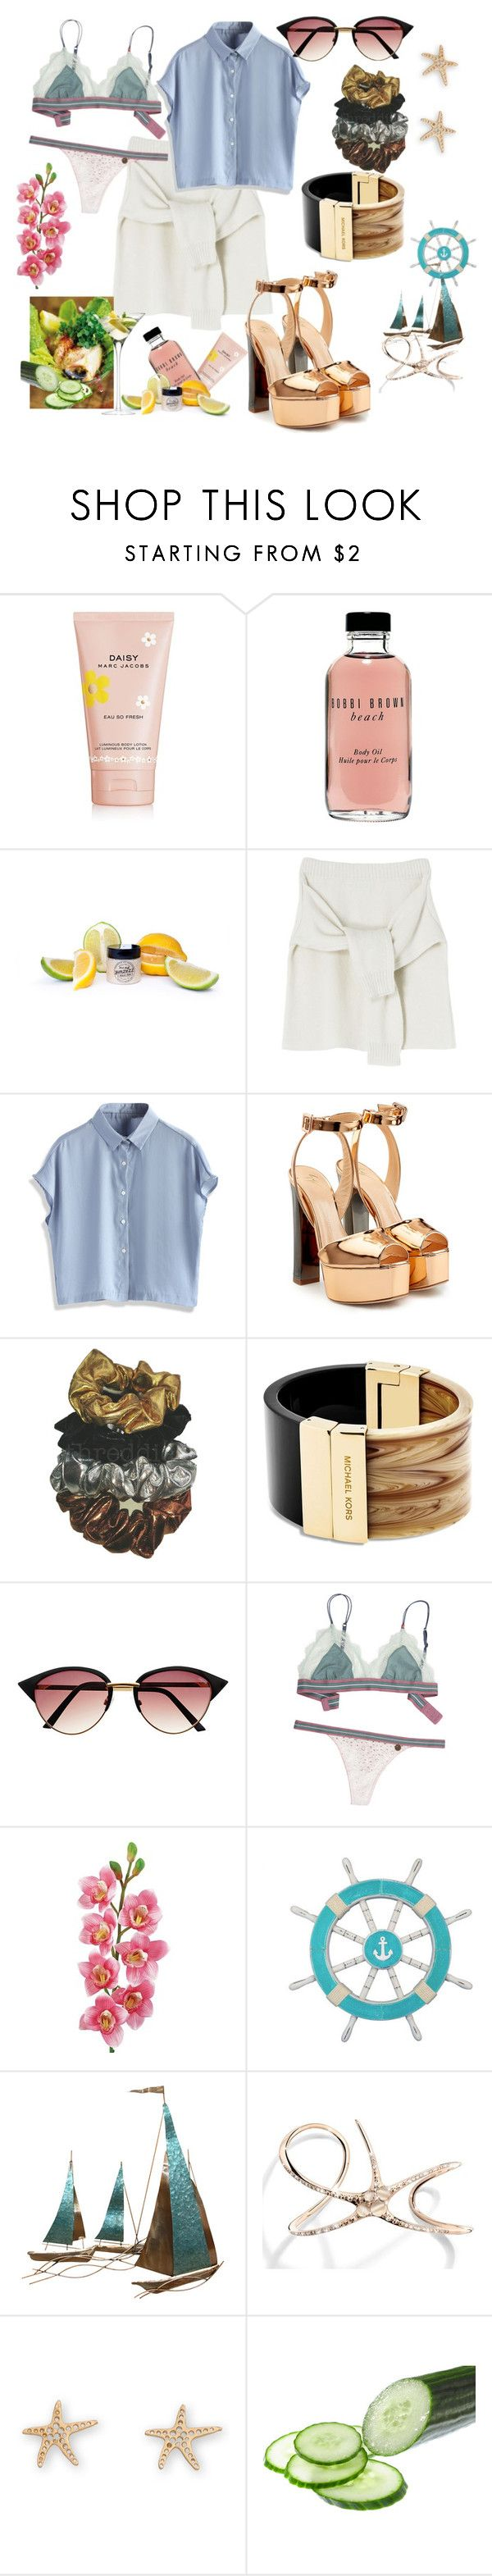 """Let's go yachting!"" by p0llyinurpocket ❤ liked on Polyvore featuring Marc Jacobs, Bobbi Brown Cosmetics, BUFF, Chicwish, Giuseppe Zanotti, Threddies, Michael Kors, Laura Cole, Stratton Home Décor and Cristina Ortiz"